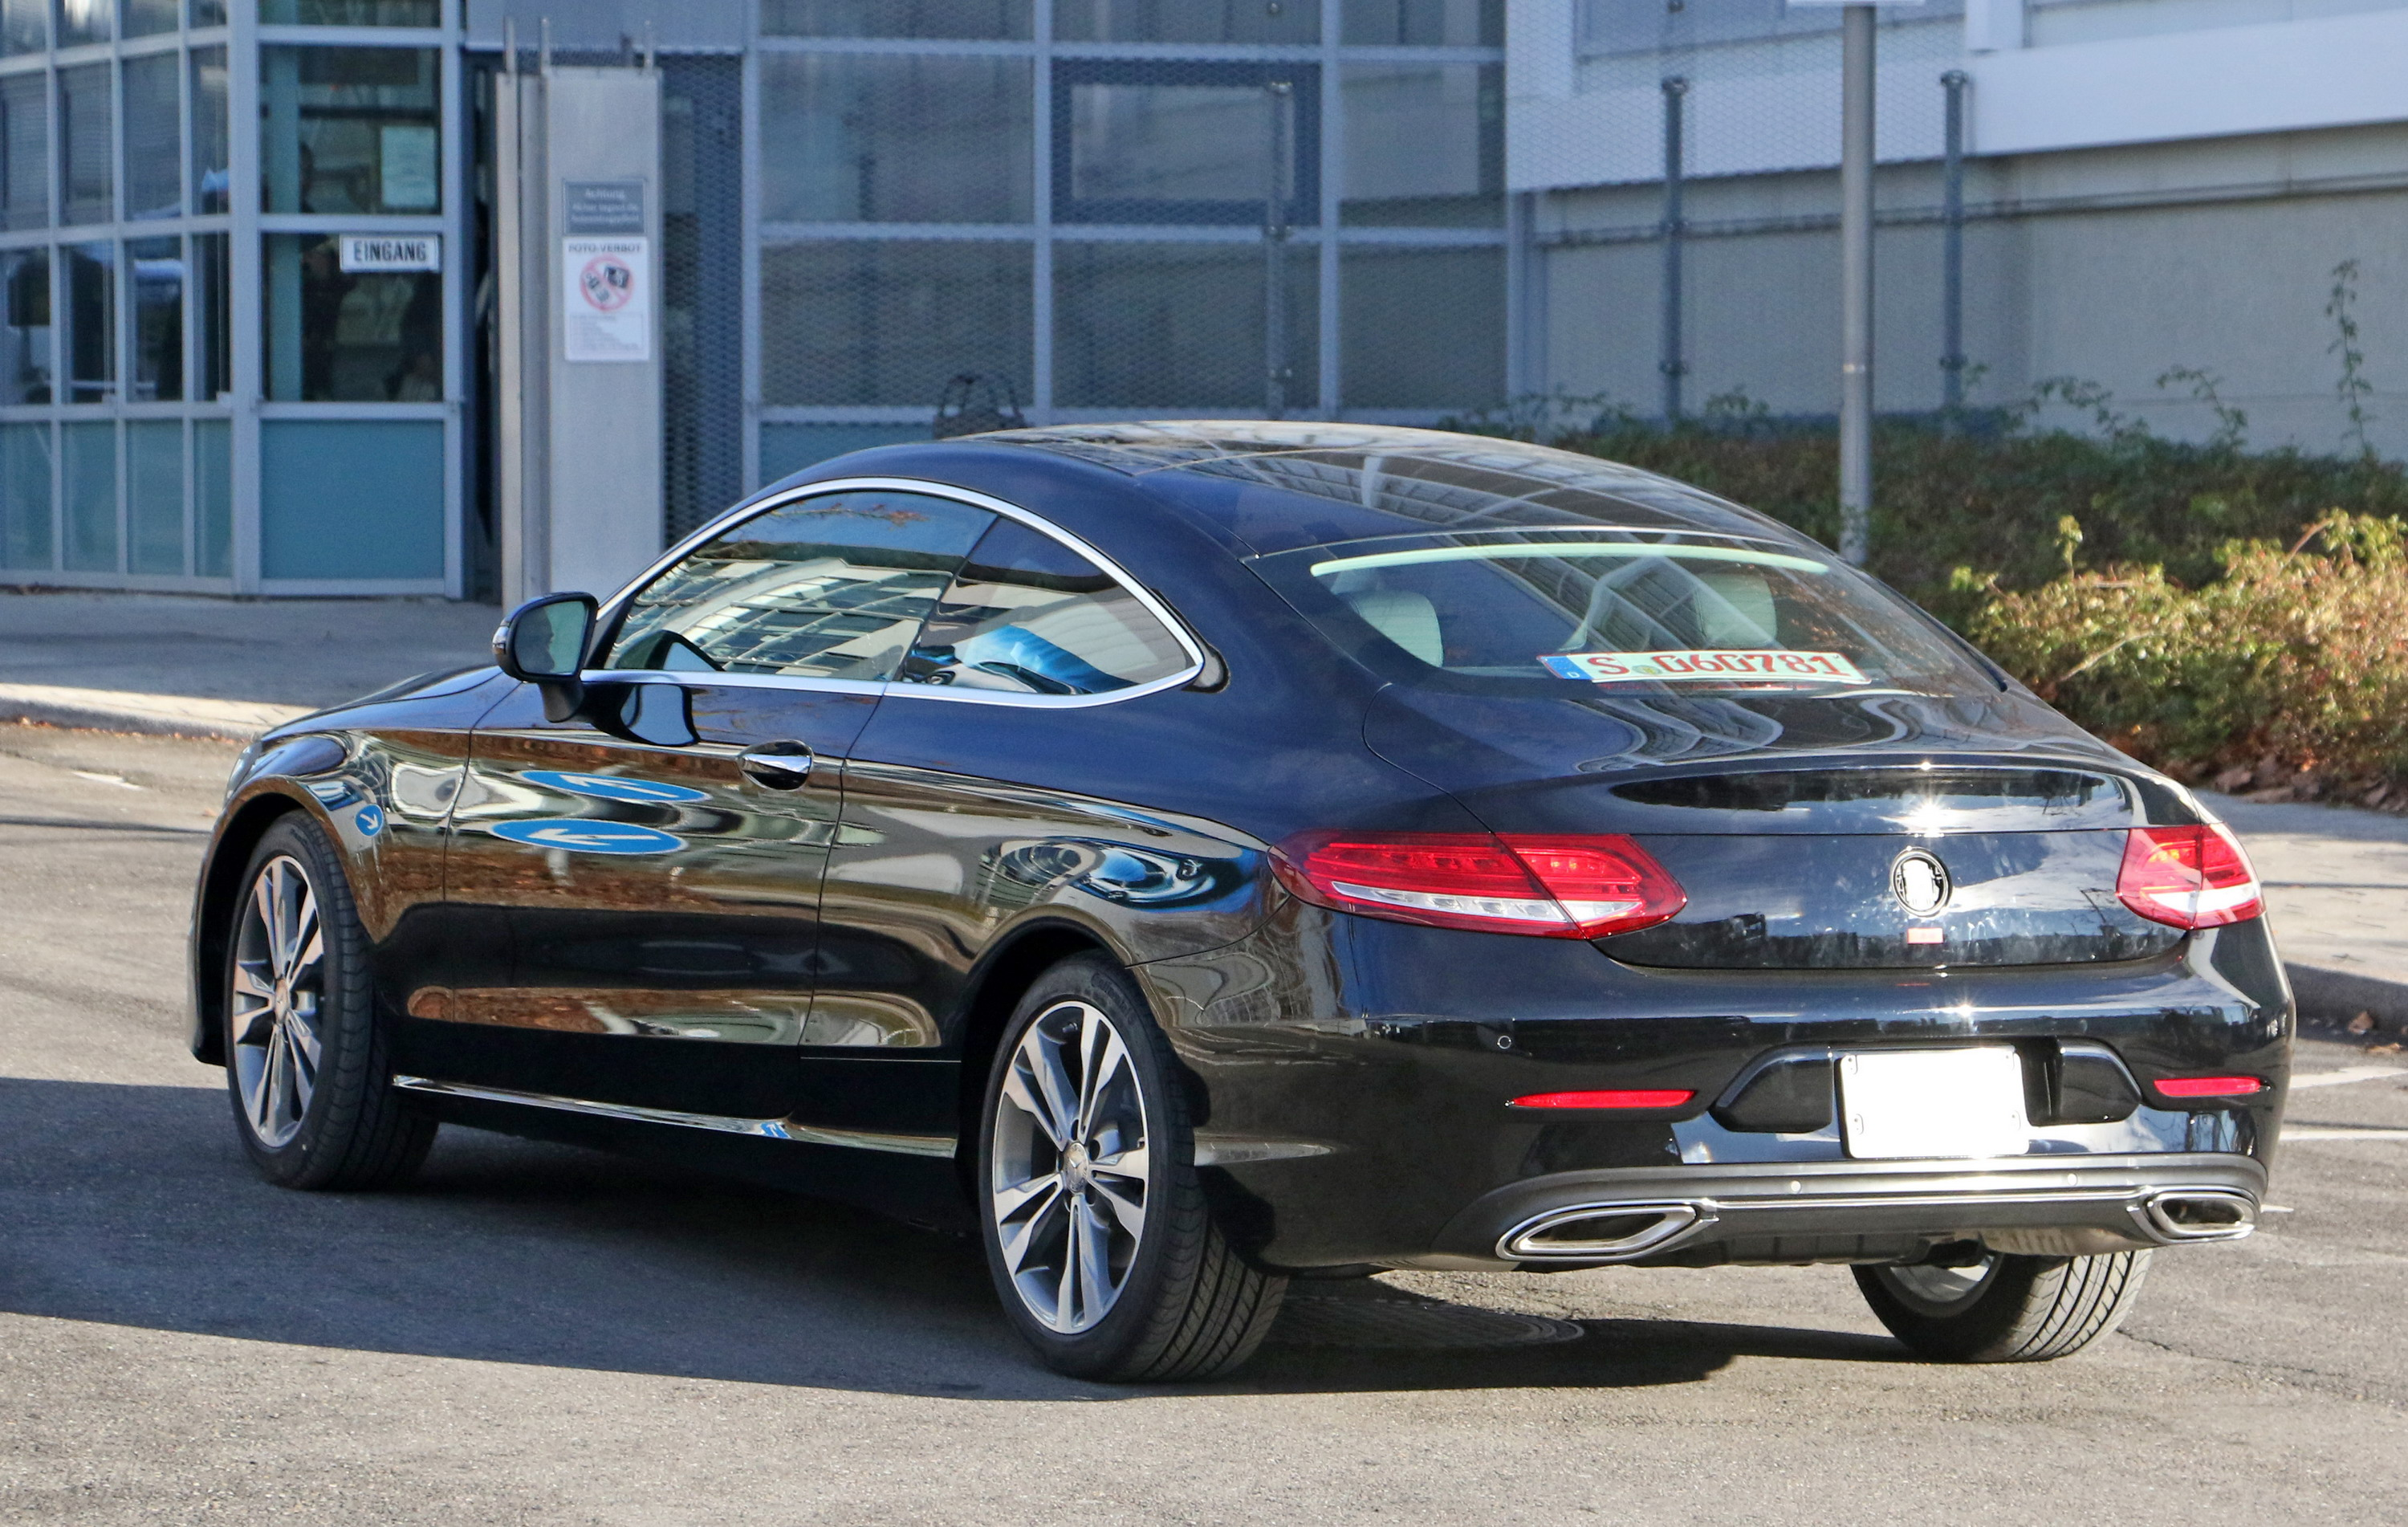 2018 mercedes benz c class coupe review top speed for 2018 mercedes benz c300